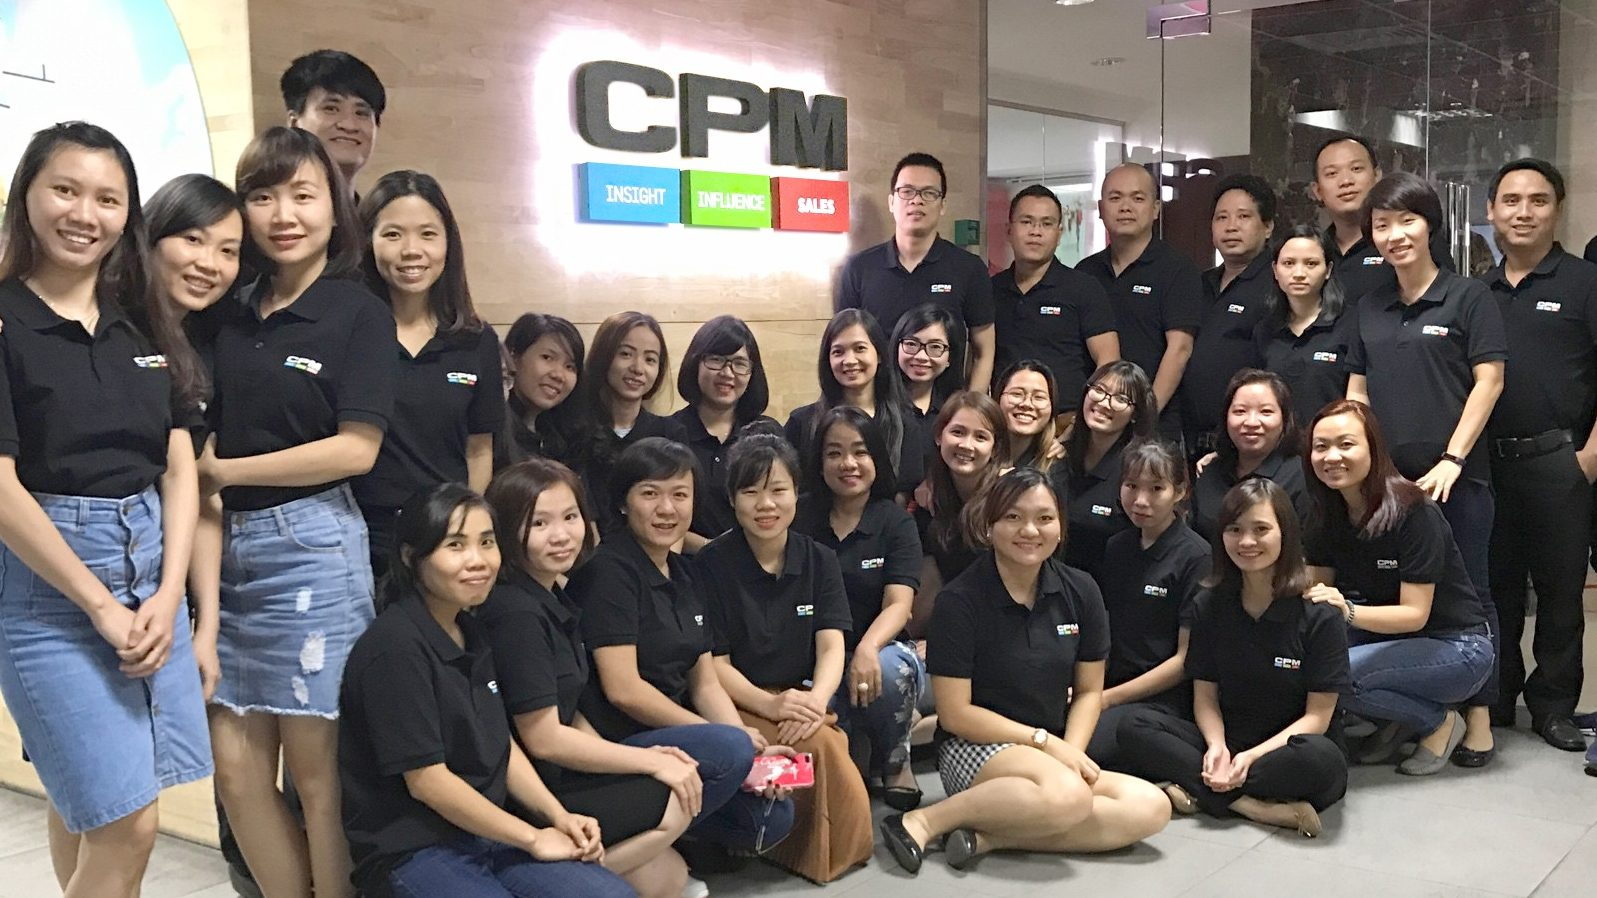 Spirit of CPM Vietnam